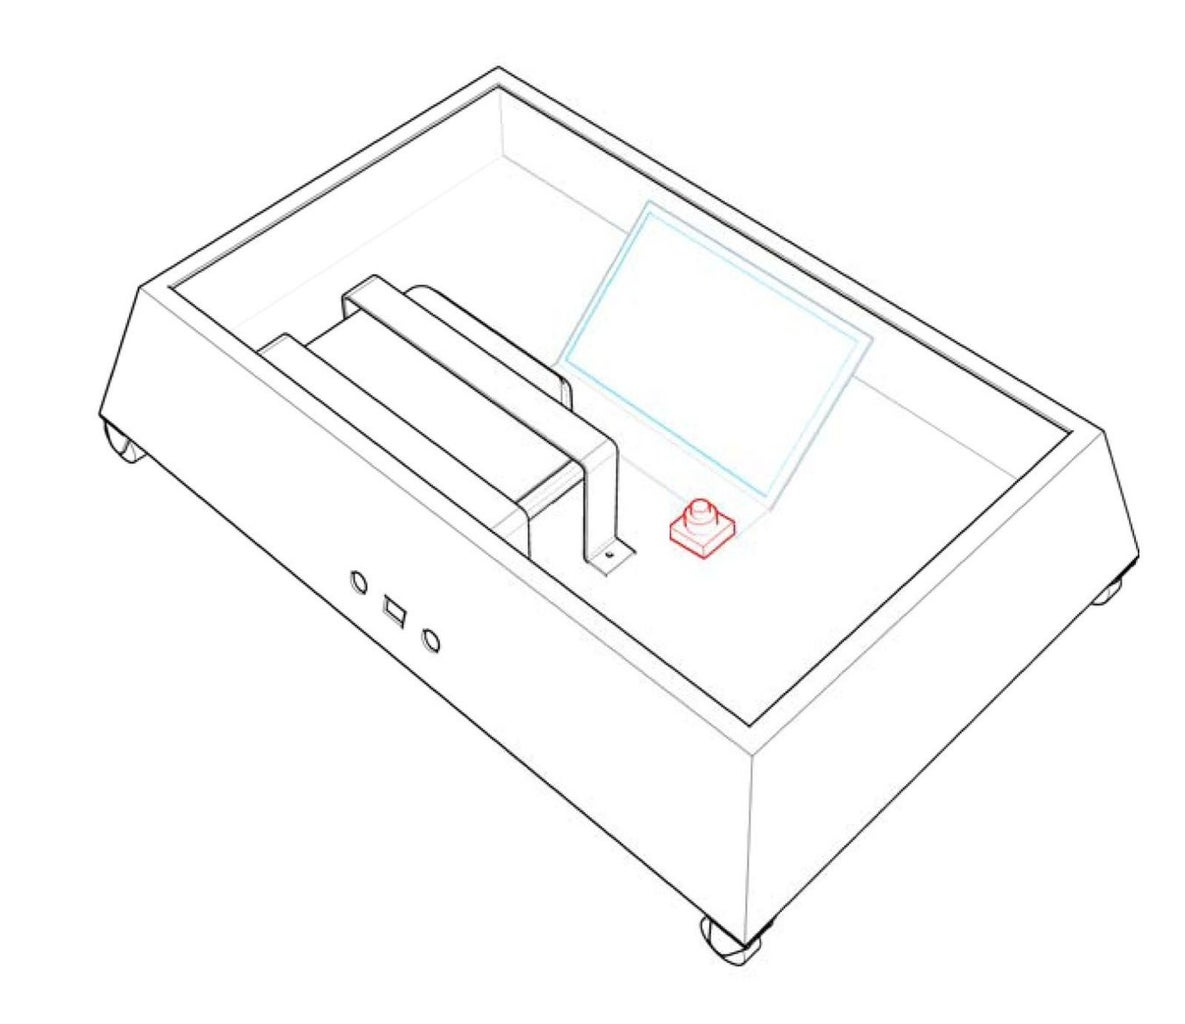 Components: the Projector